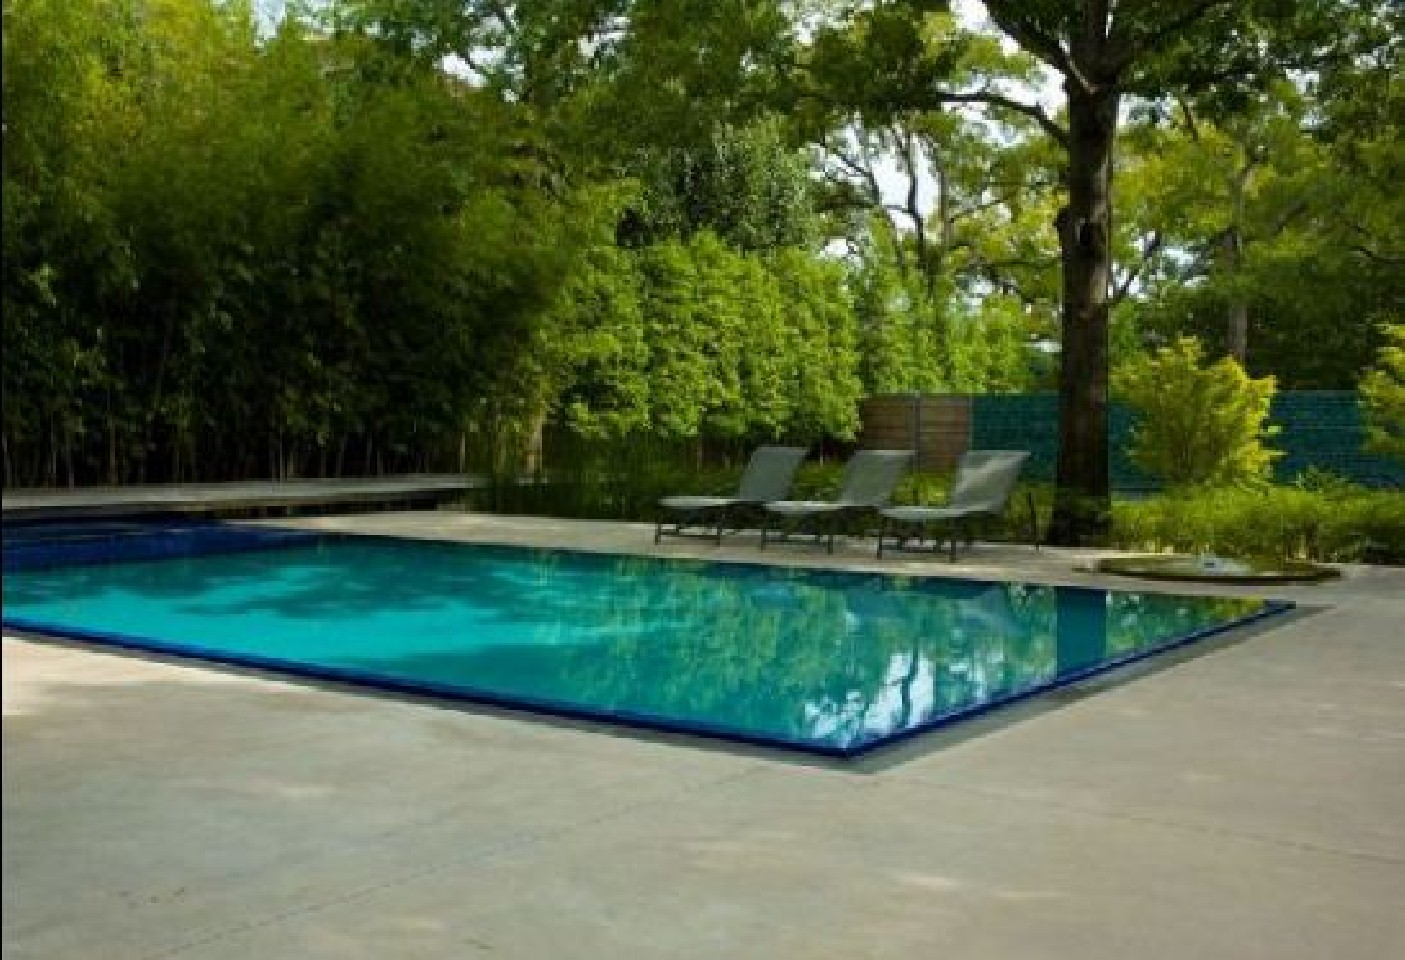 Fabulous Small Swimming Pool Design Ideas 1405 x 960 · 291 kB · jpeg